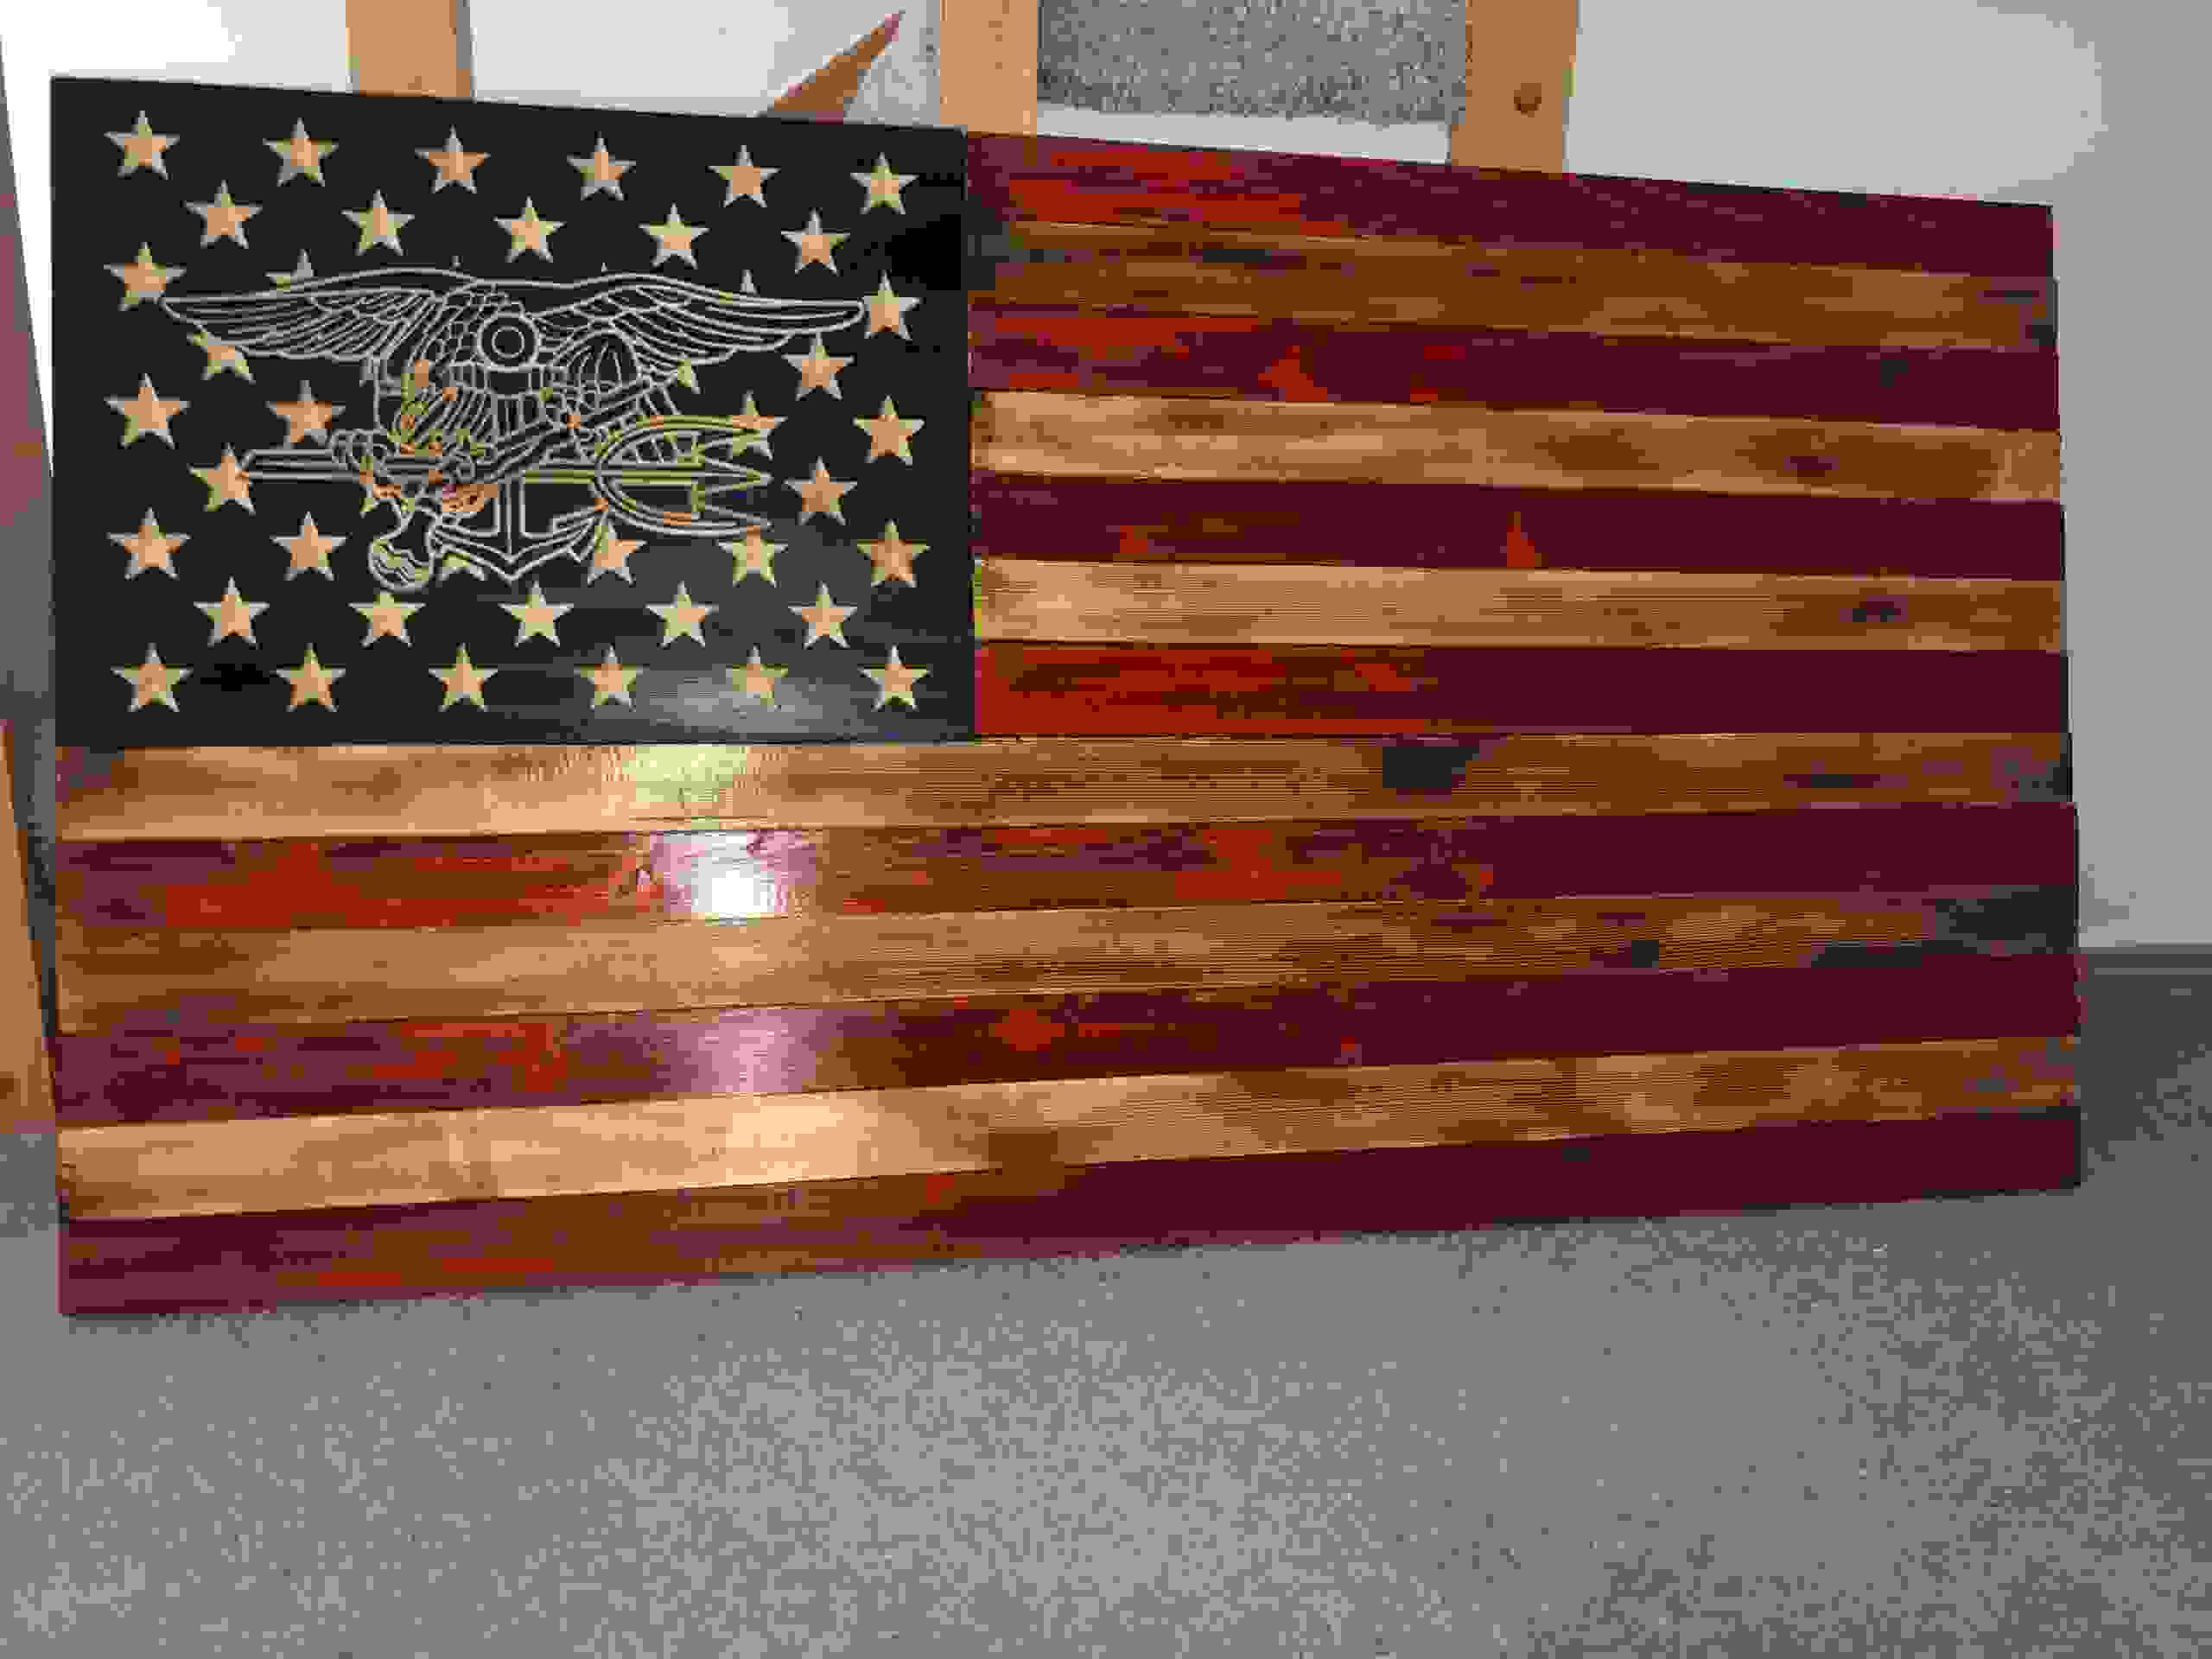 What a beautiful Navy Seal rustic wooden Flag!